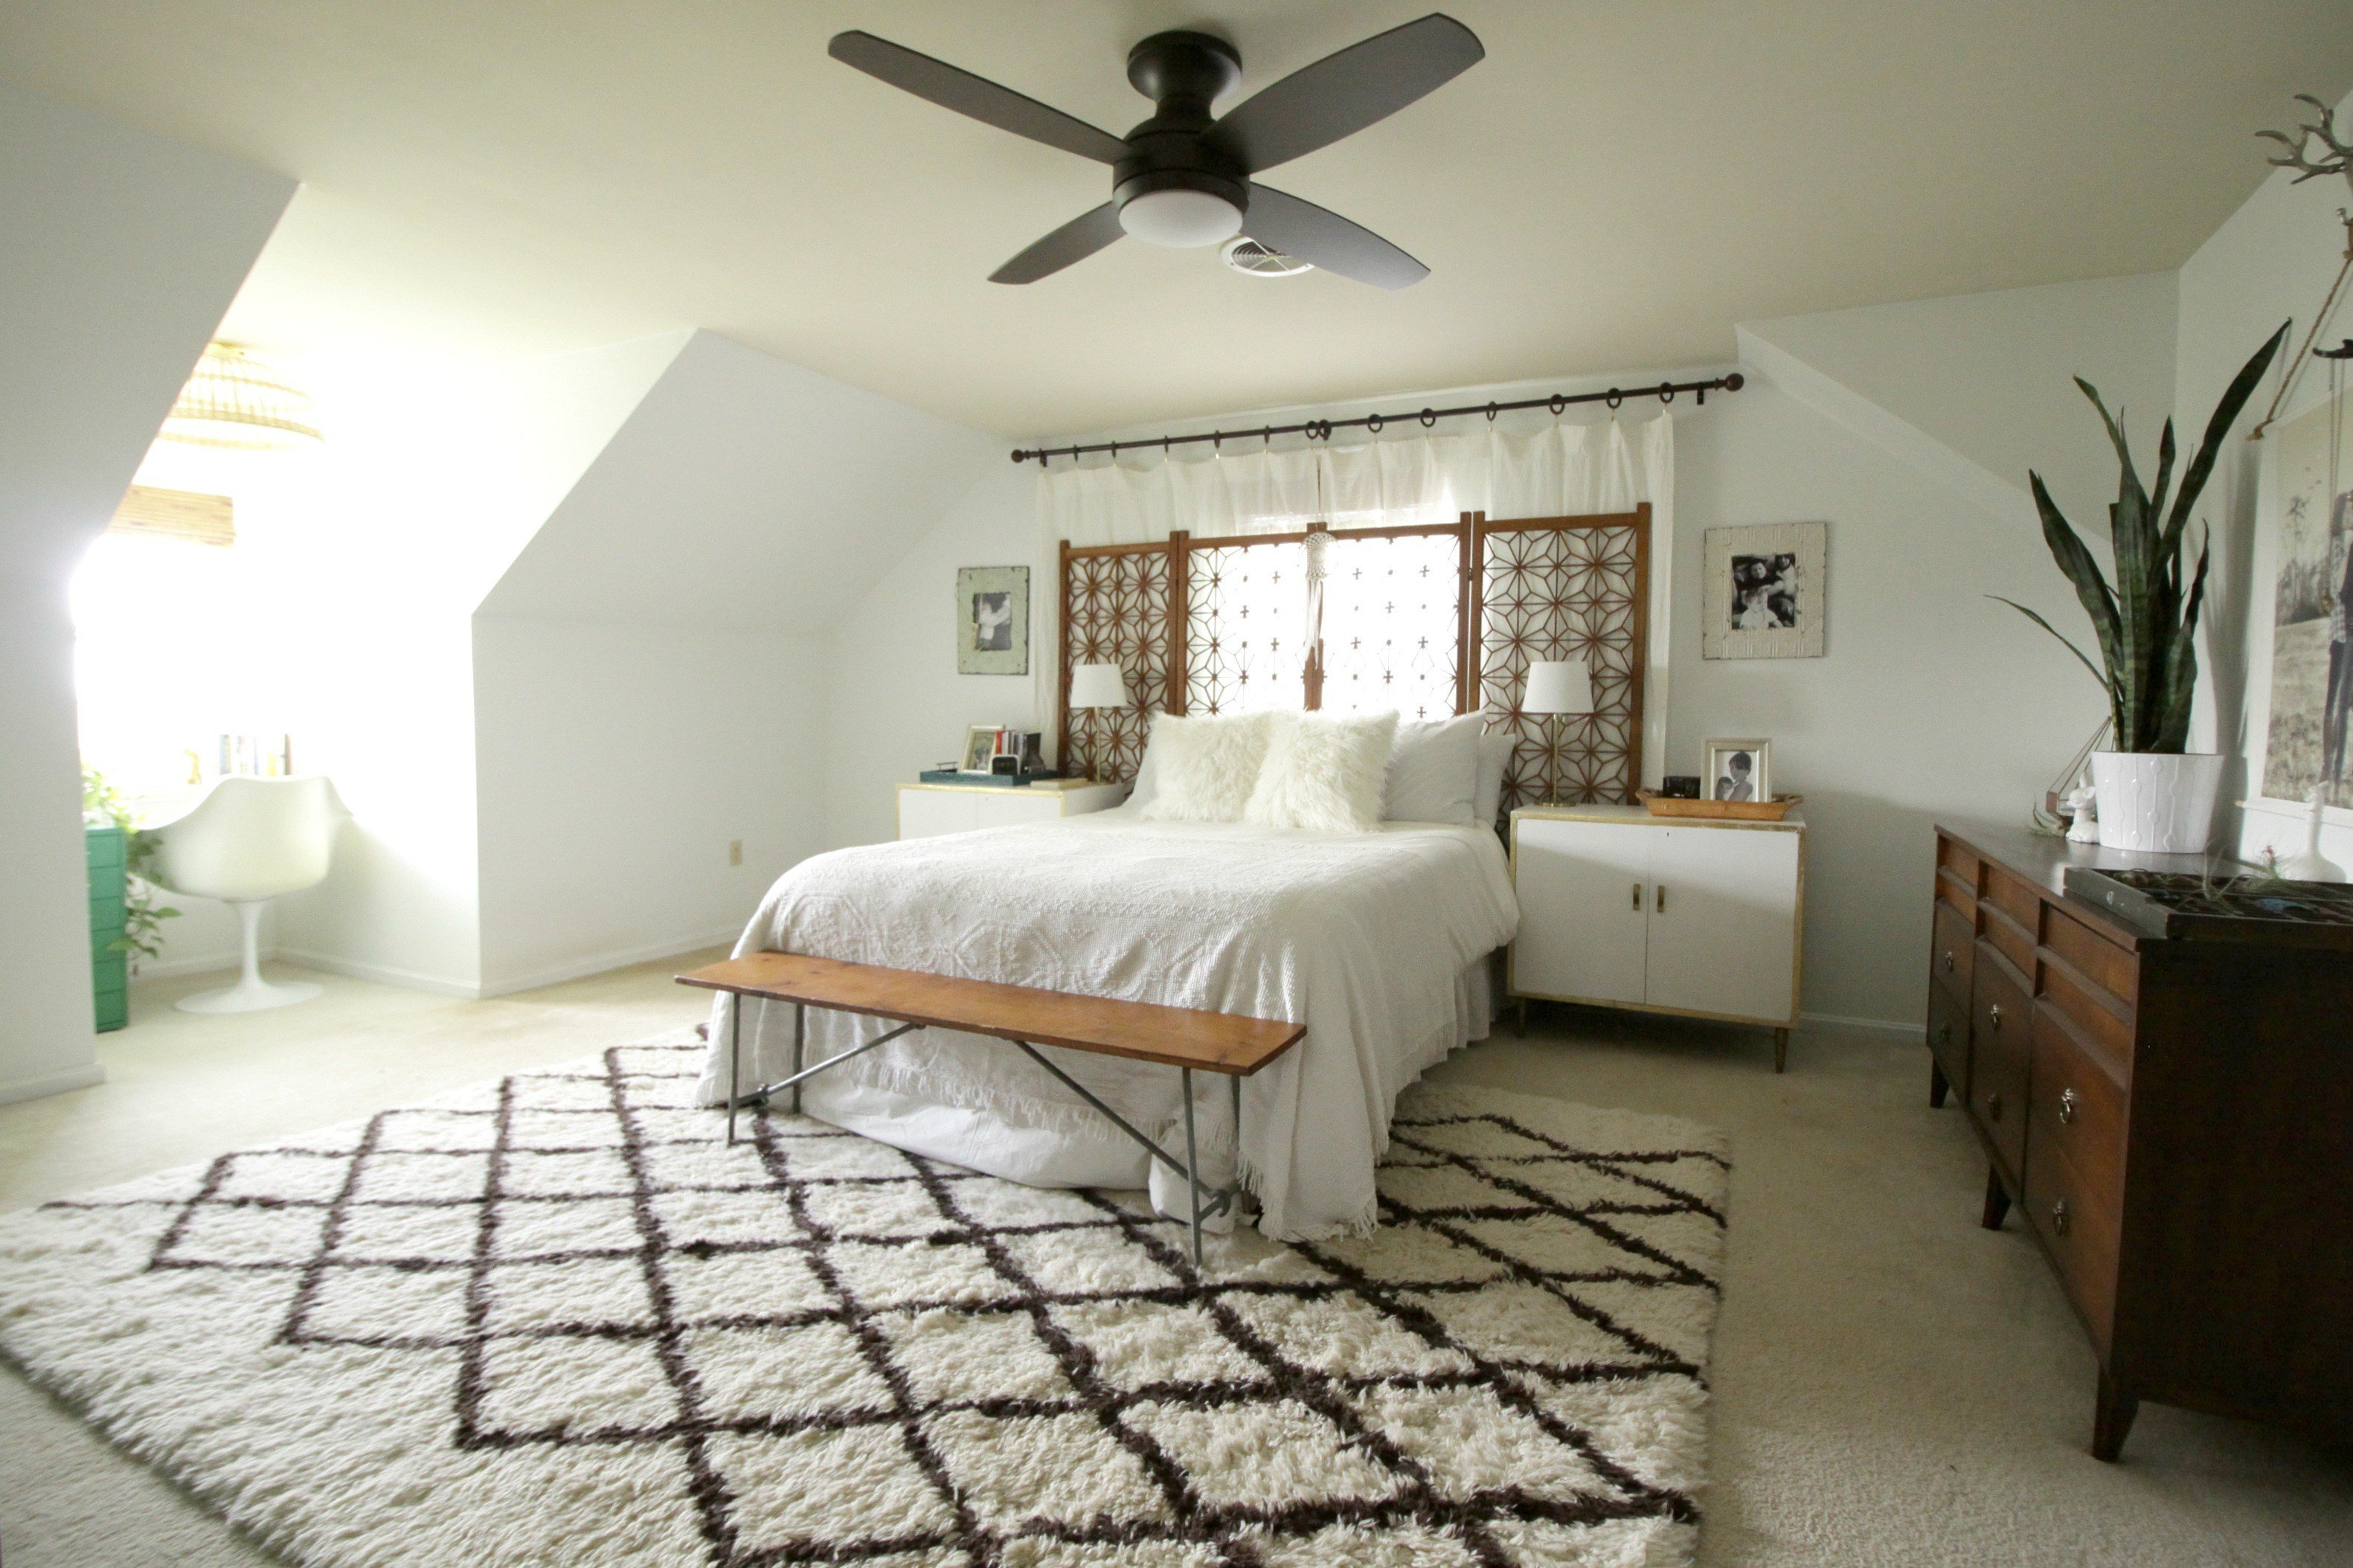 Best New Ceiling Fan In The Master Bedroom Cassie Bustamante With Pictures